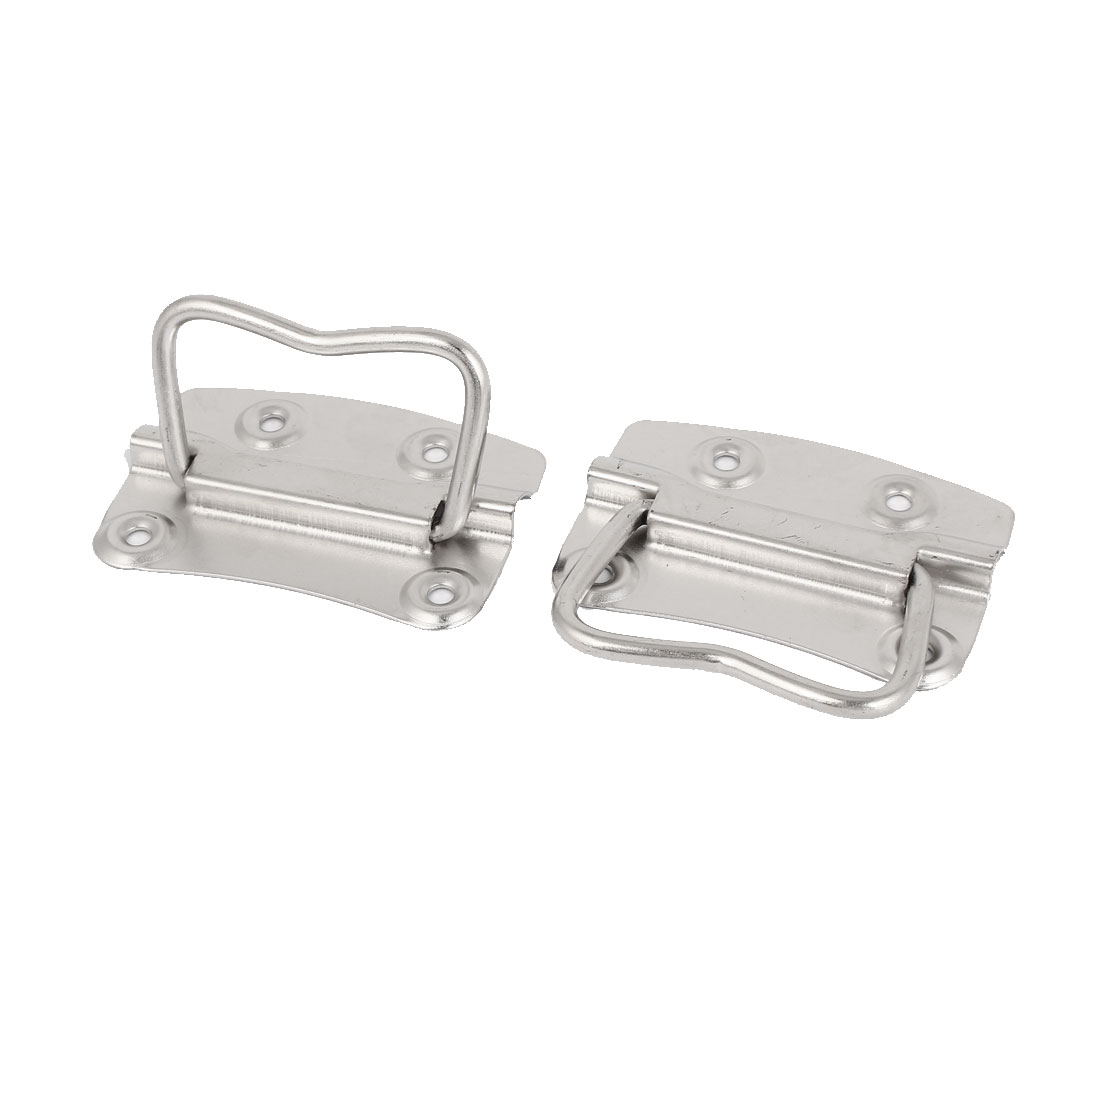 Household Storage Box Tool Chest Metal Puller Handle 80mm Length 2pcs